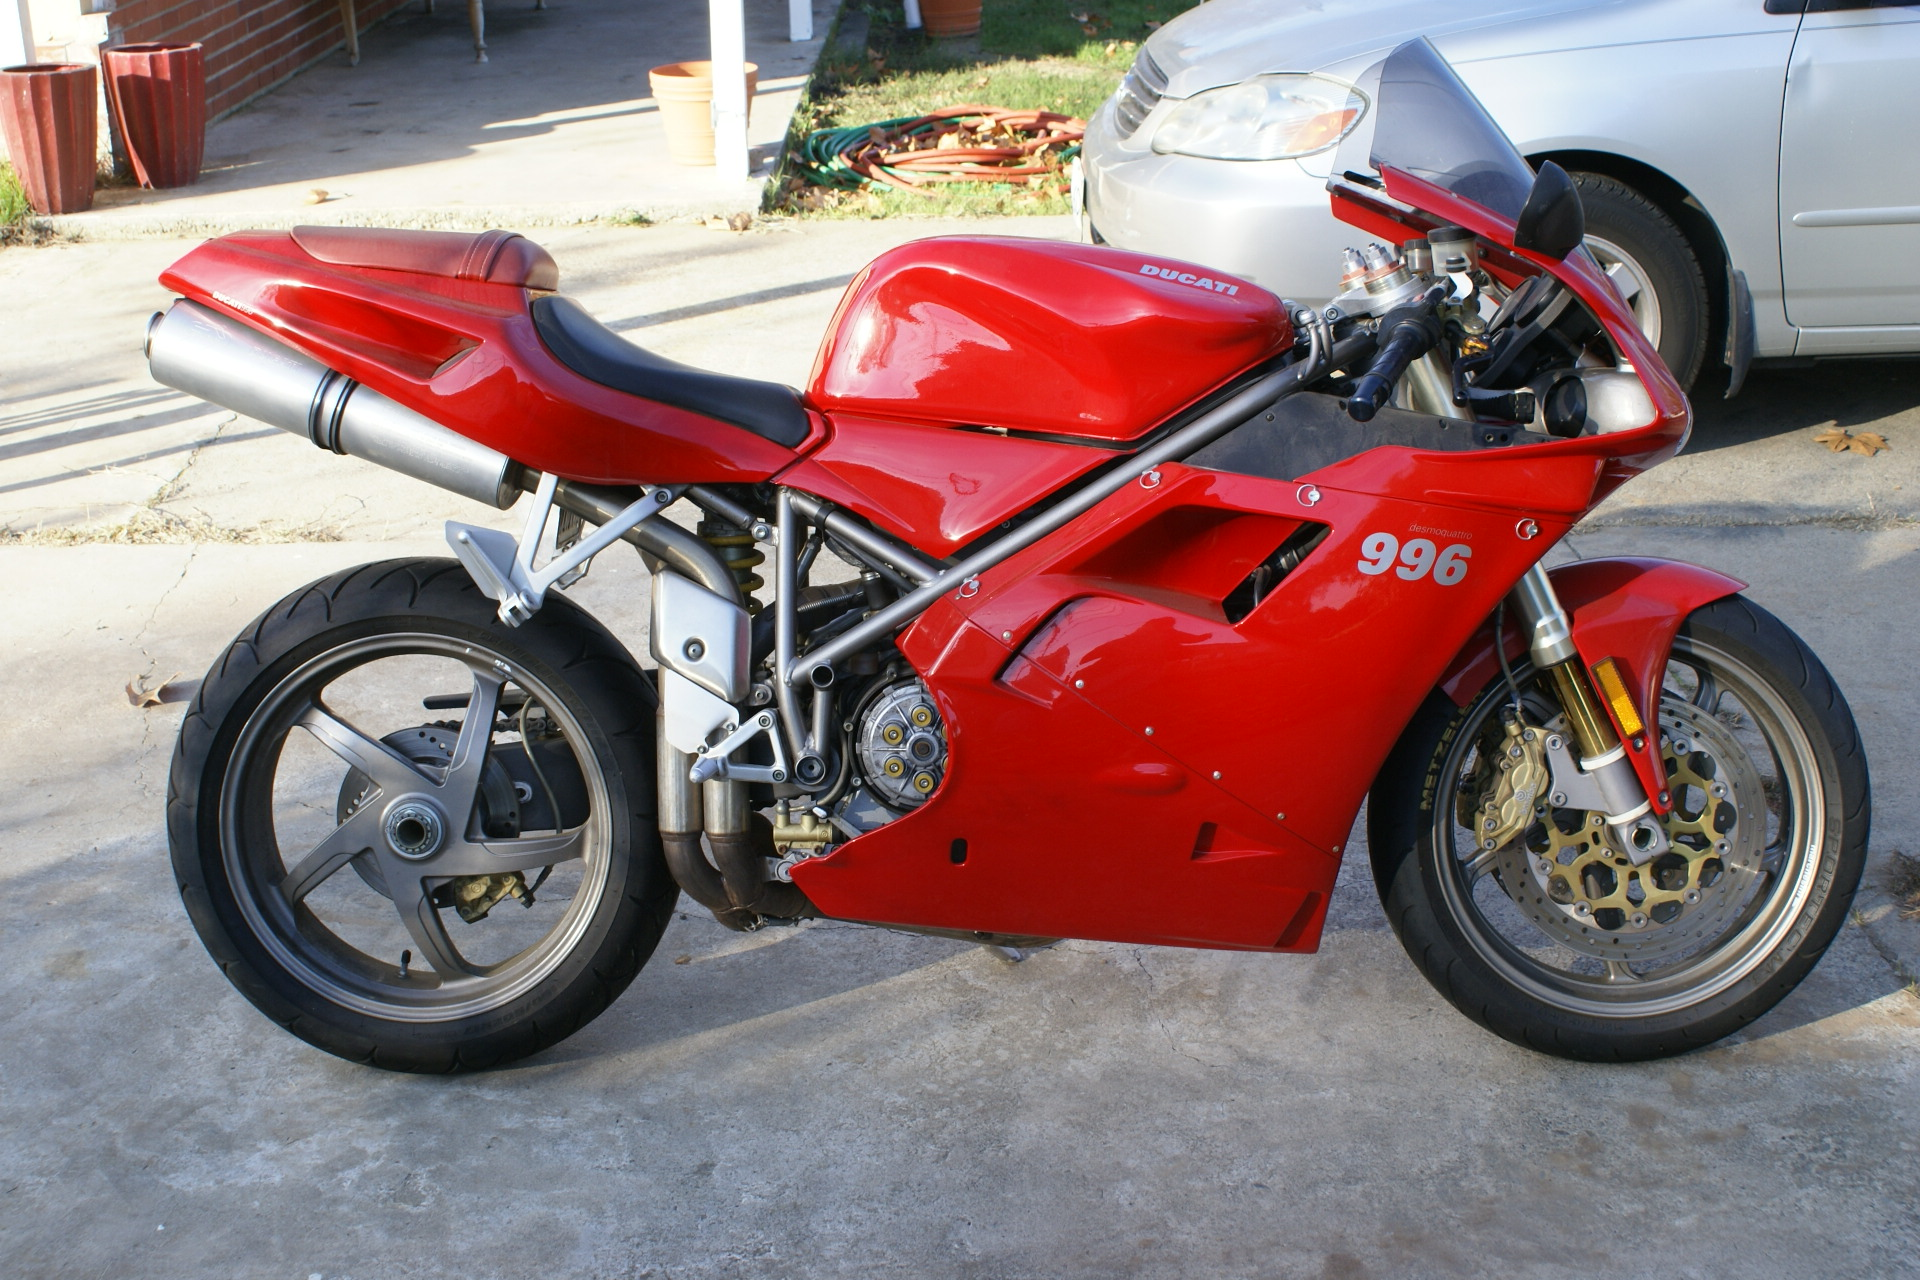 Ducati 996 wallpapers #11236